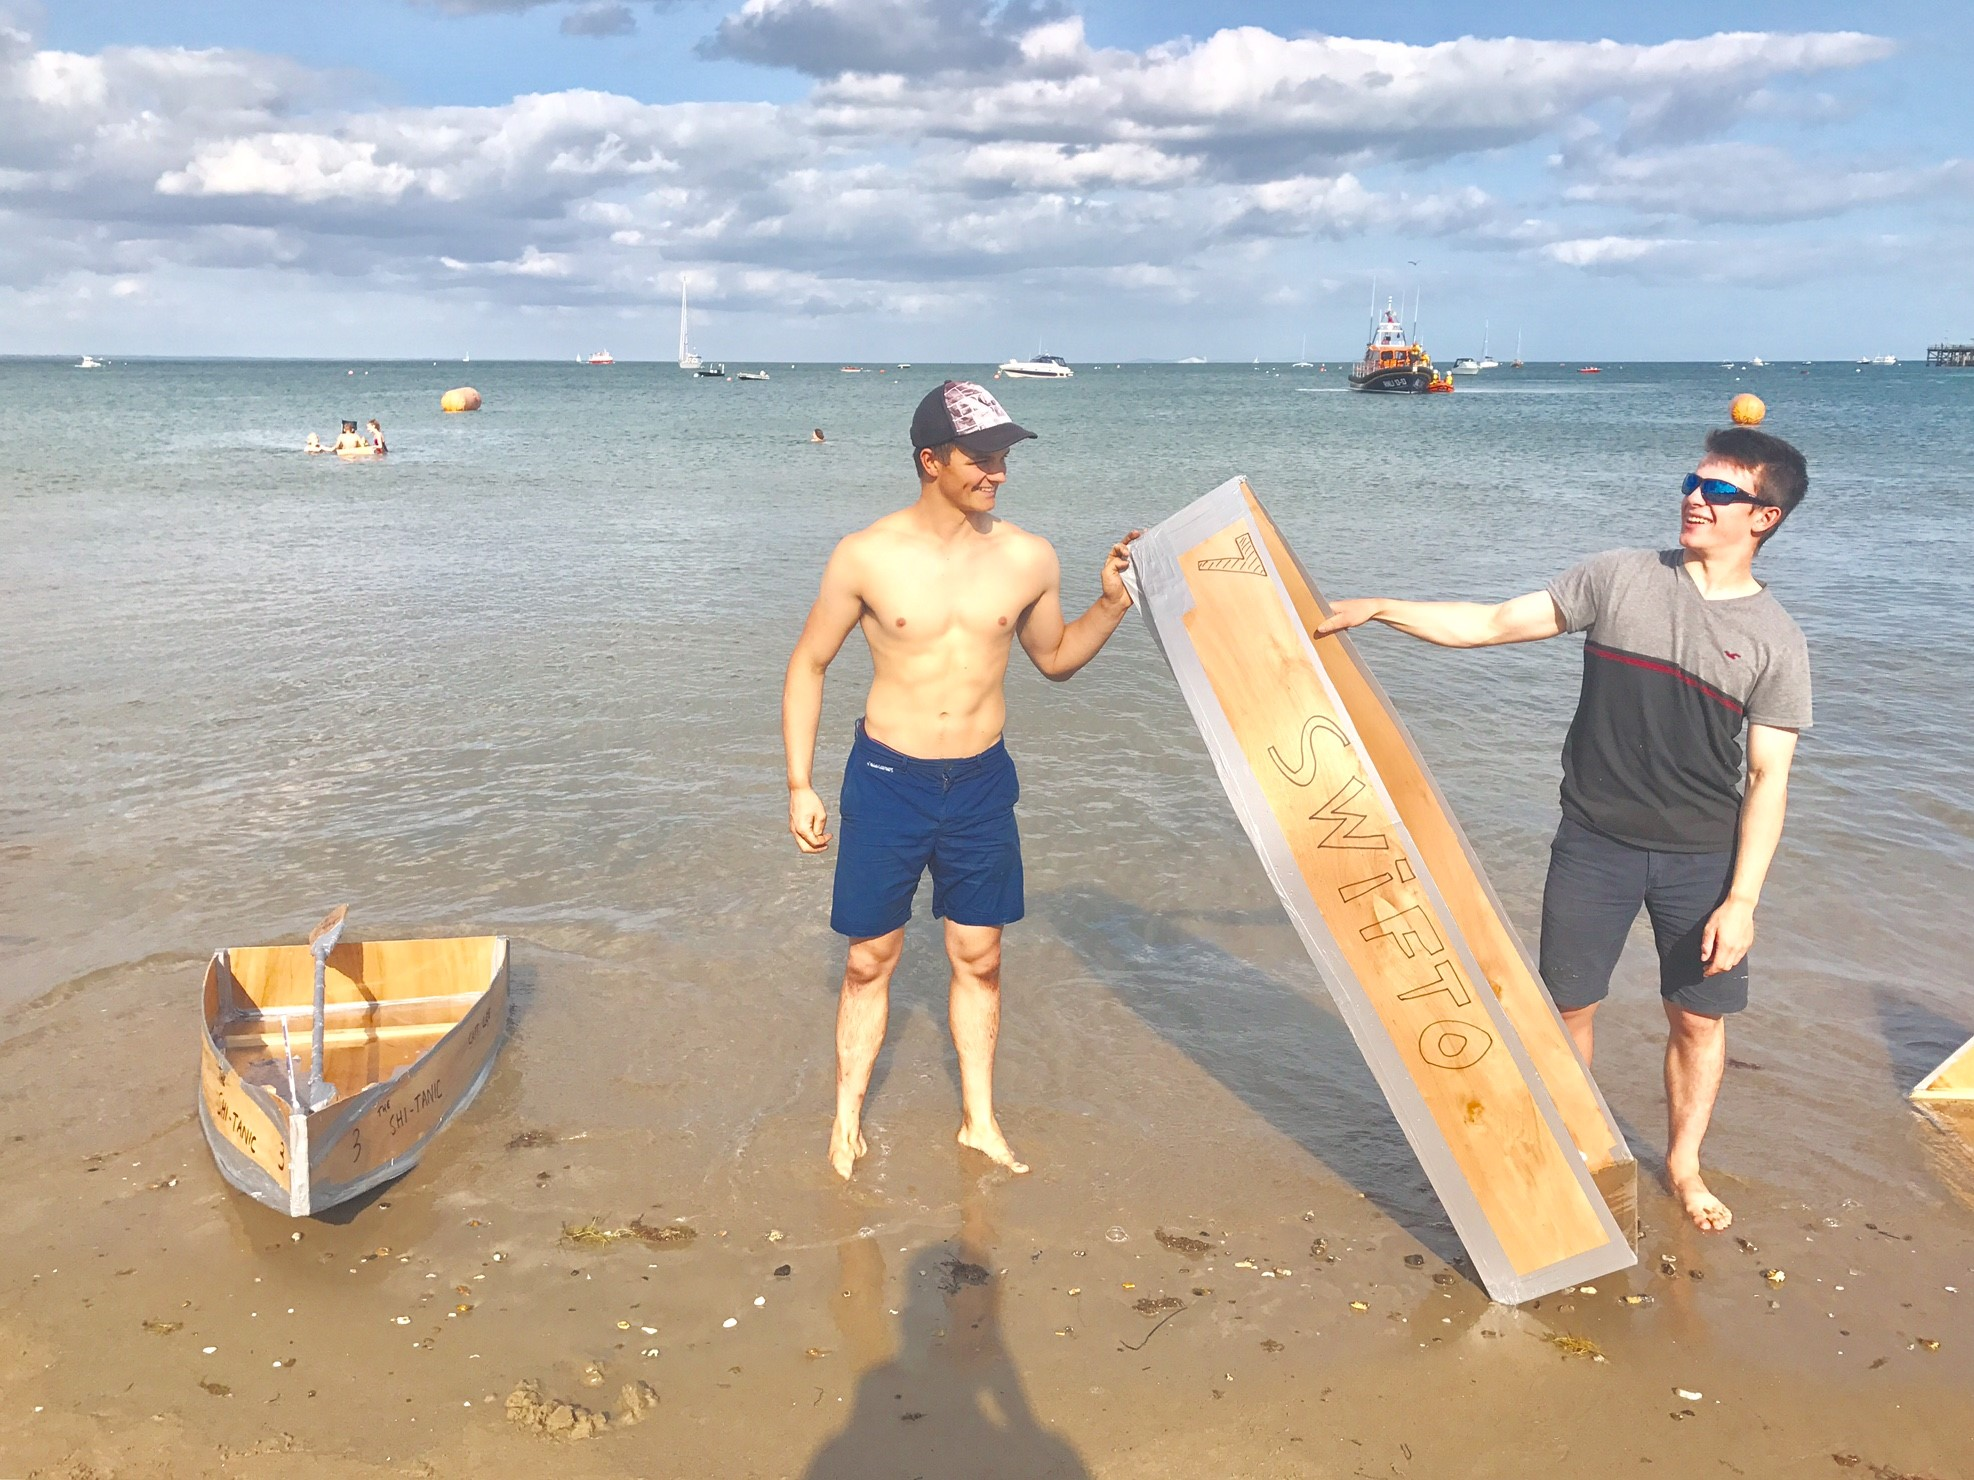 I then was around for RNLI week and entered into the build-a-boat challenge. 4 hours, 1 sheet of plywood, 30 screws, 30 nails and a whole lot of duct tape later and I had a boat to race across the bay! Unfortunately I finished second but I hope to be back next year with a better design for more.